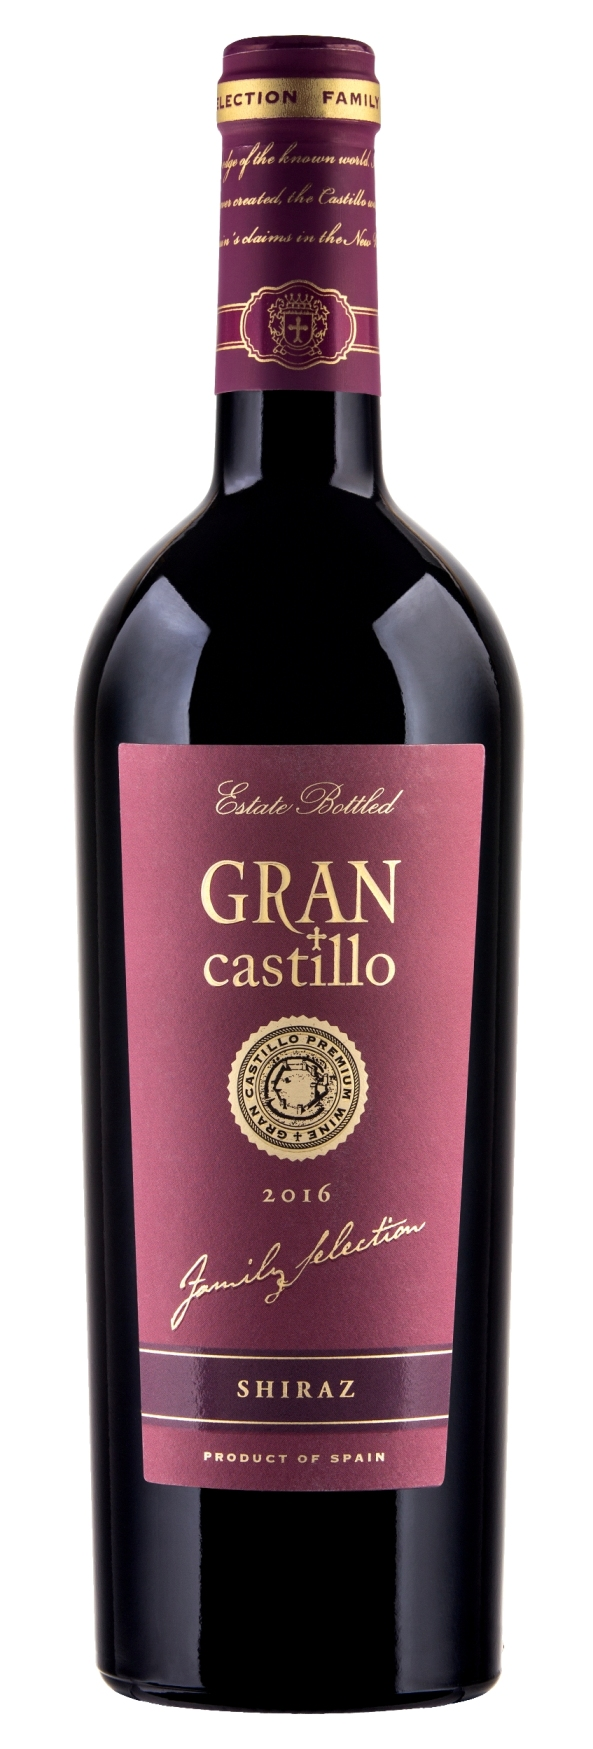 Gran Castillo Family Selection Shiraz